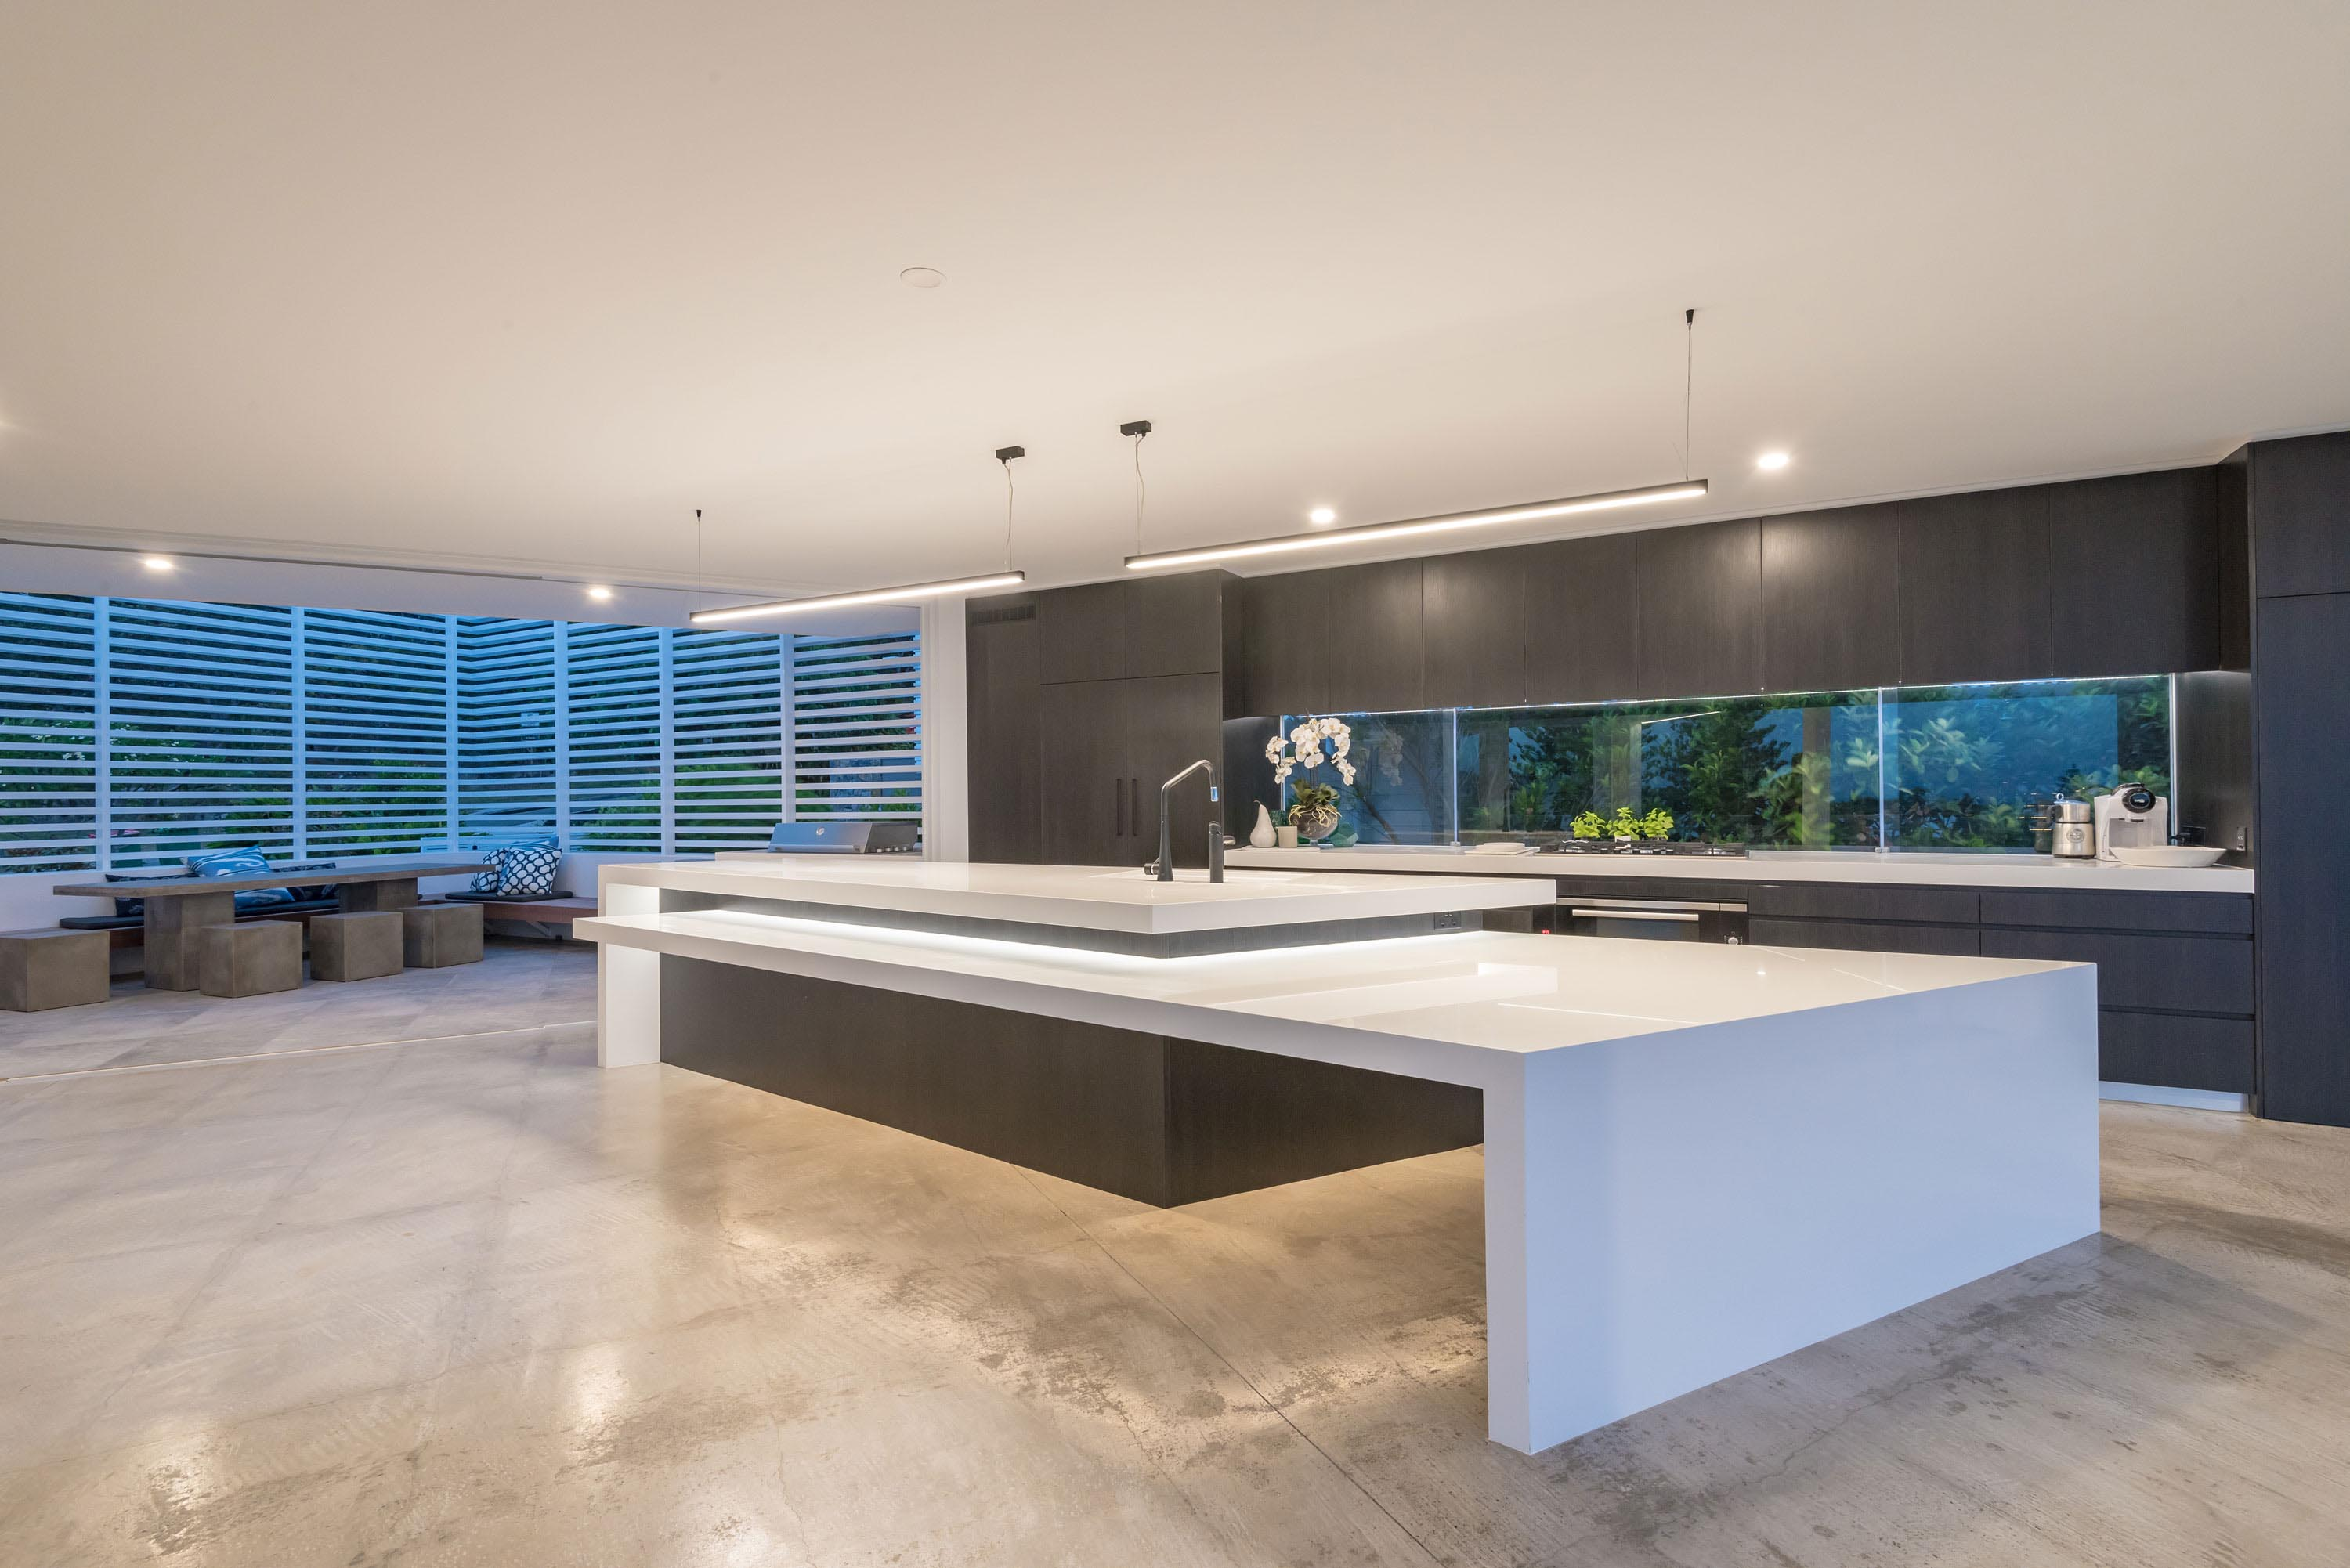 Kitchen area with screening system to the left